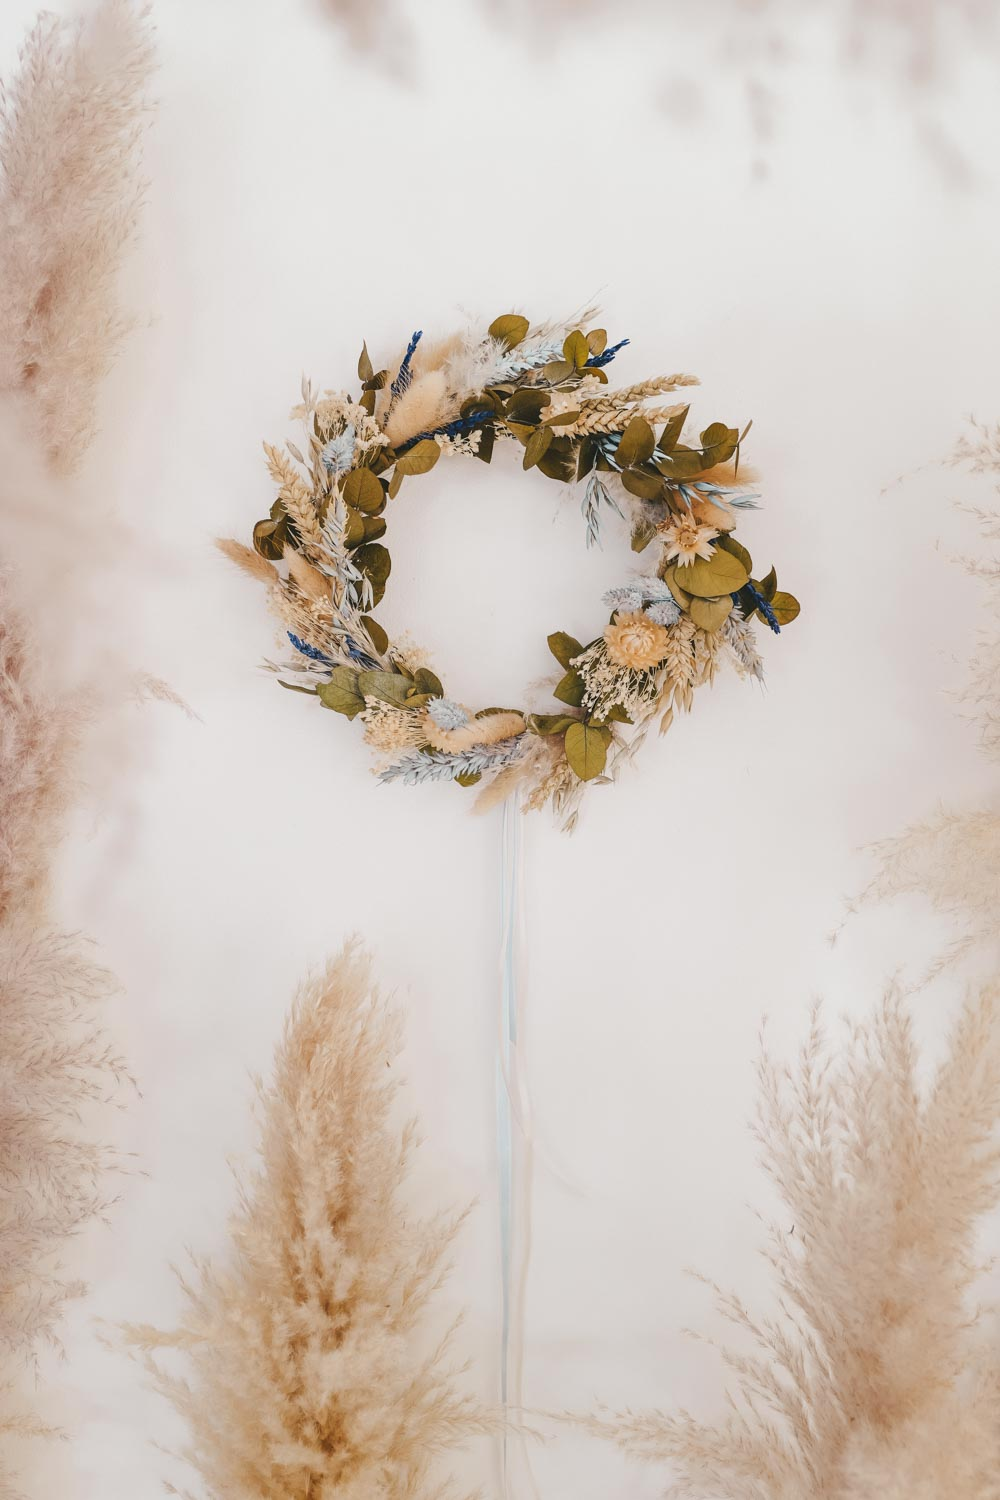 Handmade Dried Flower Hoop Brienne